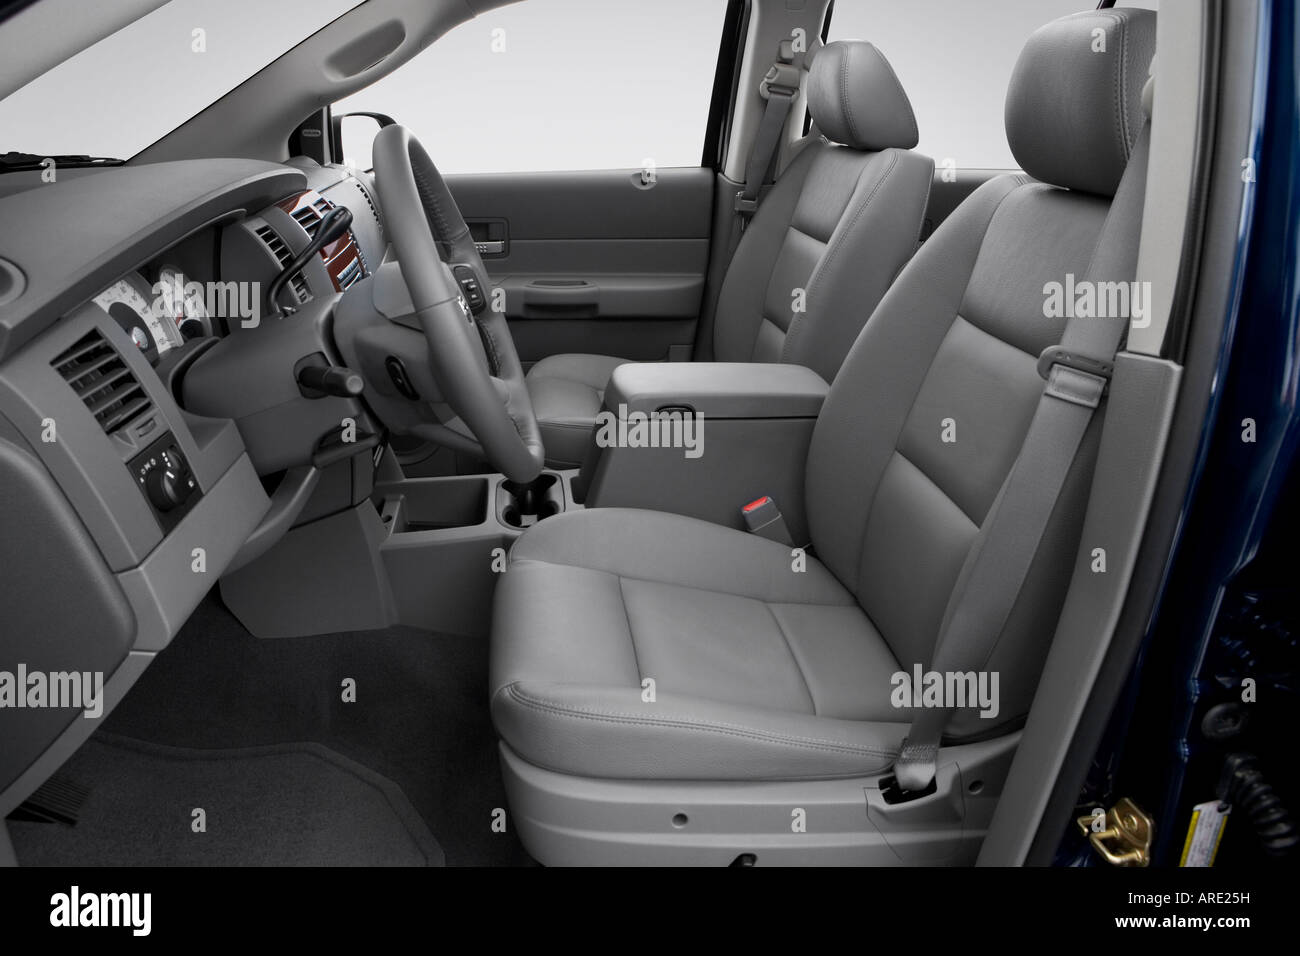 Terrific 2006 Dodge Durango Slt In Blue Front Seats Stock Photo Frankydiablos Diy Chair Ideas Frankydiabloscom